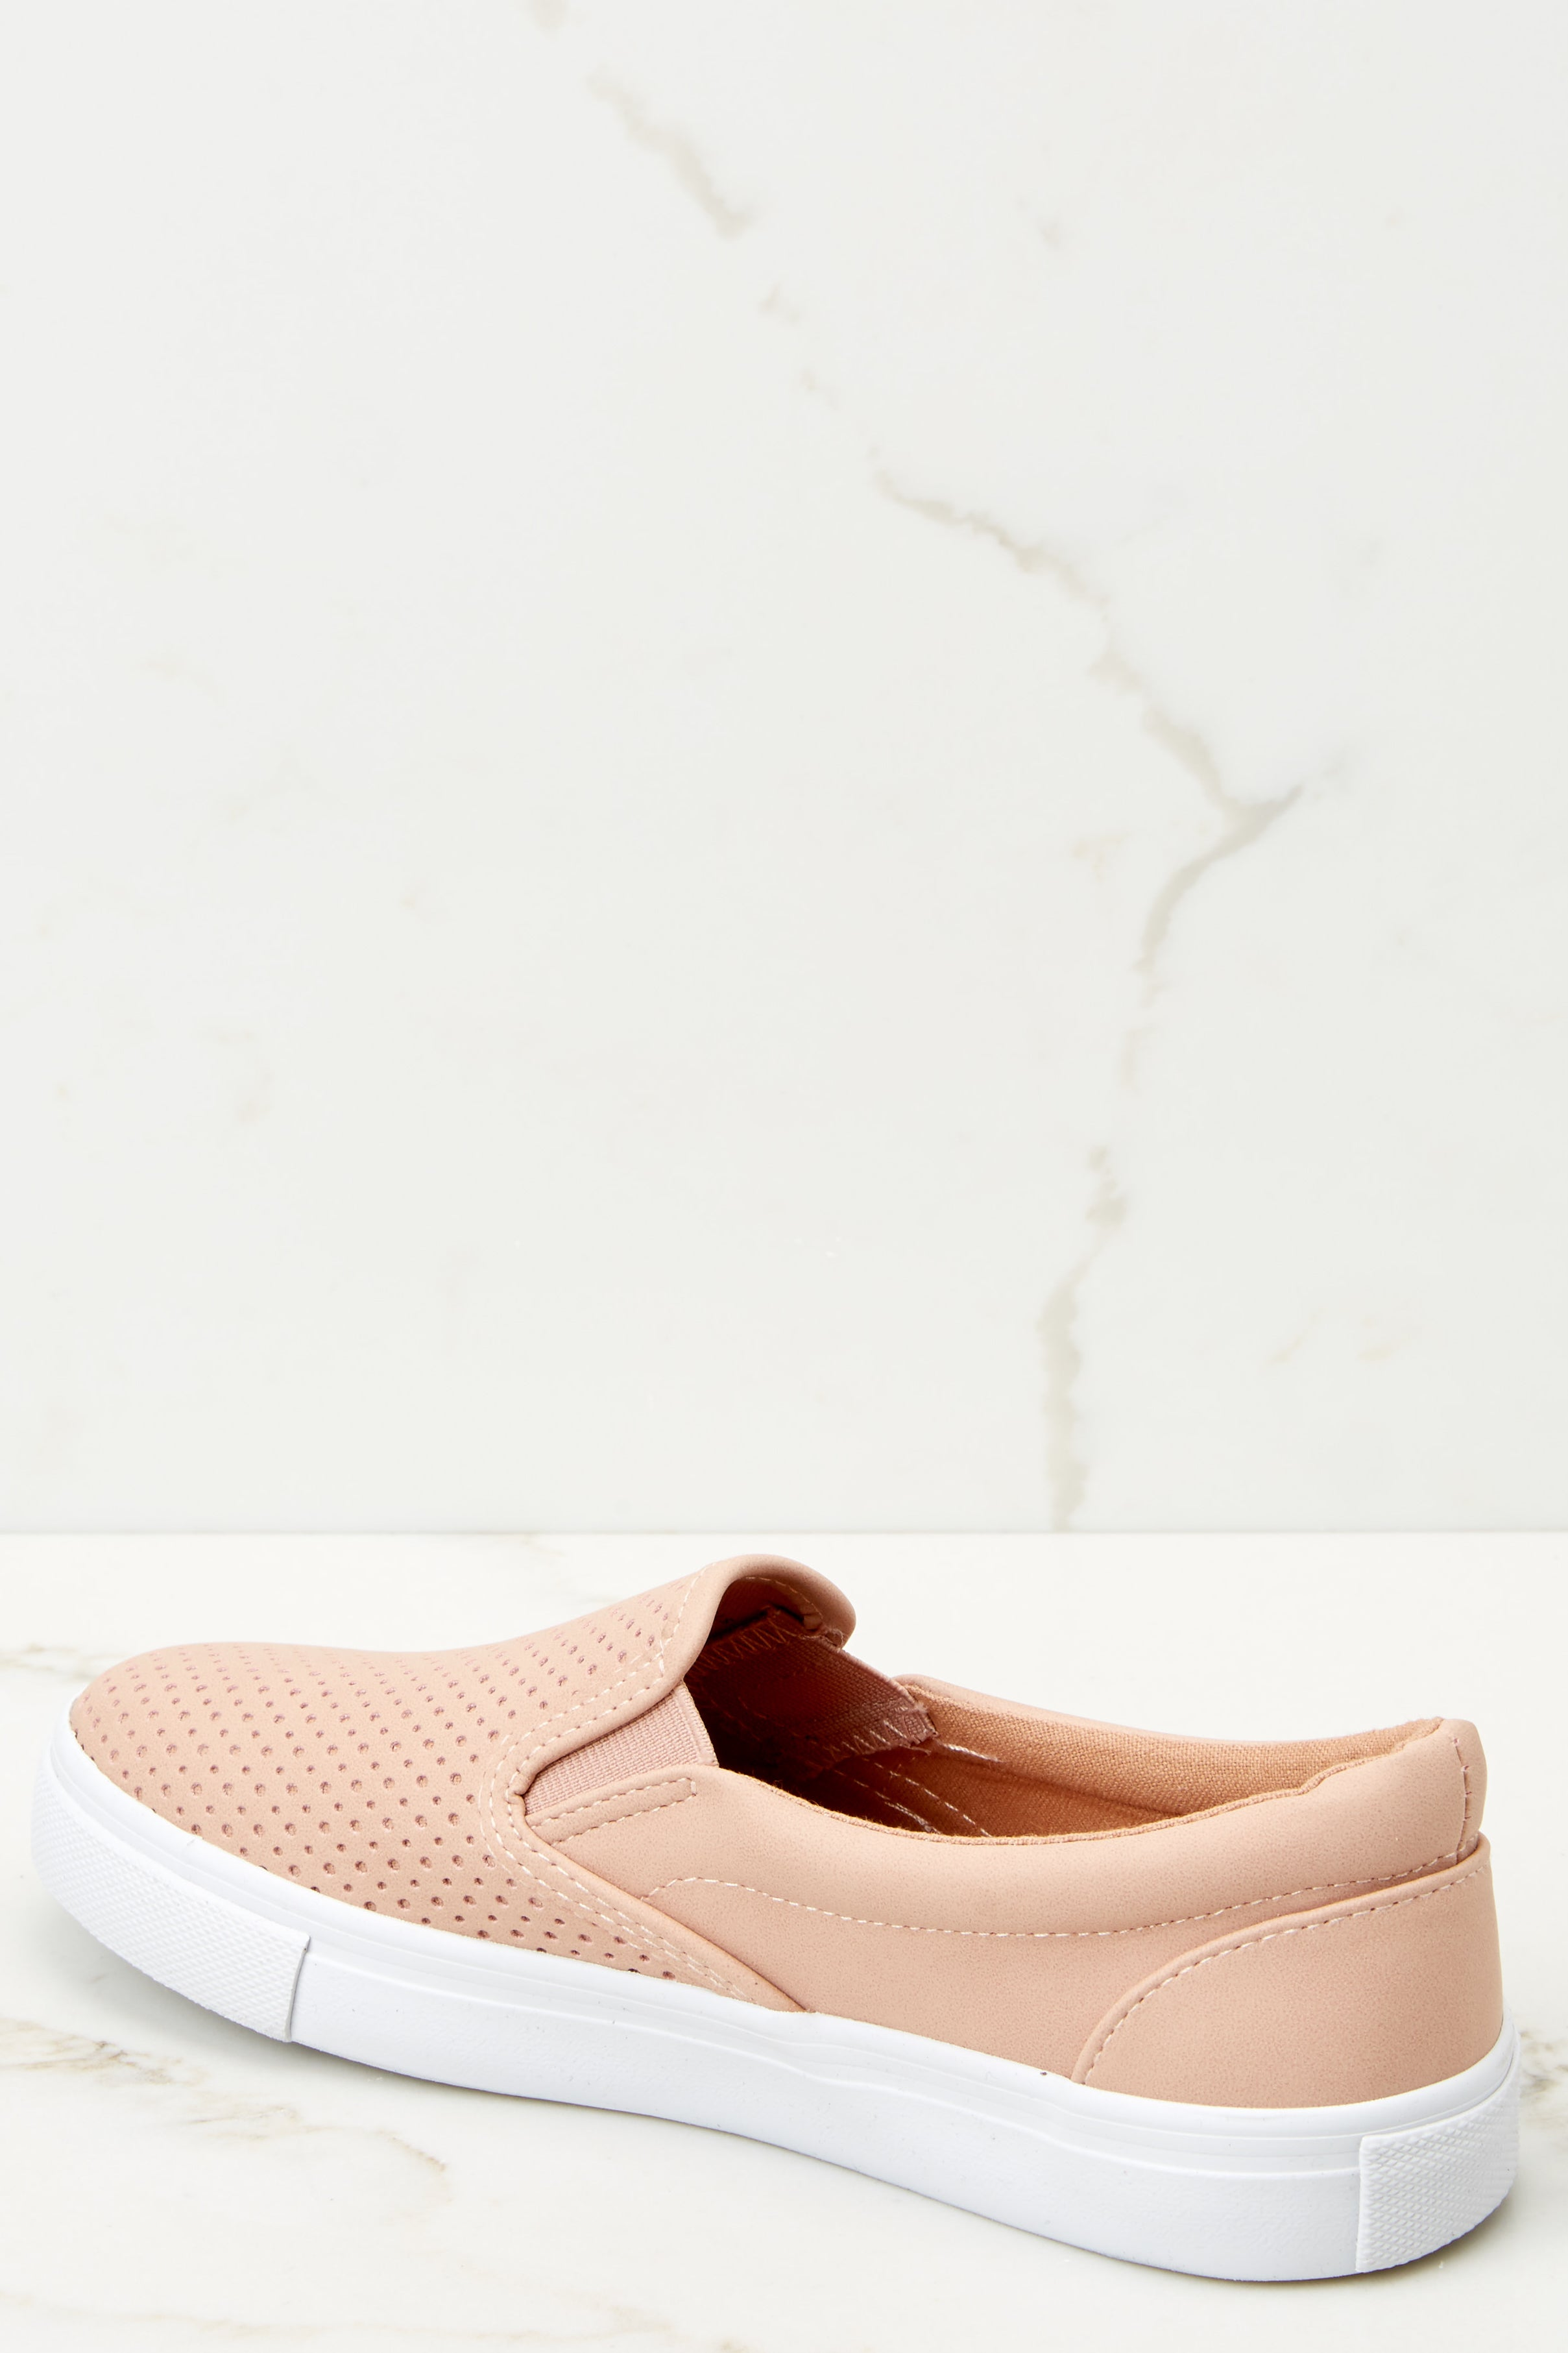 3 One Step Away Light Pink Slip On Sneakers at reddressboutique.com